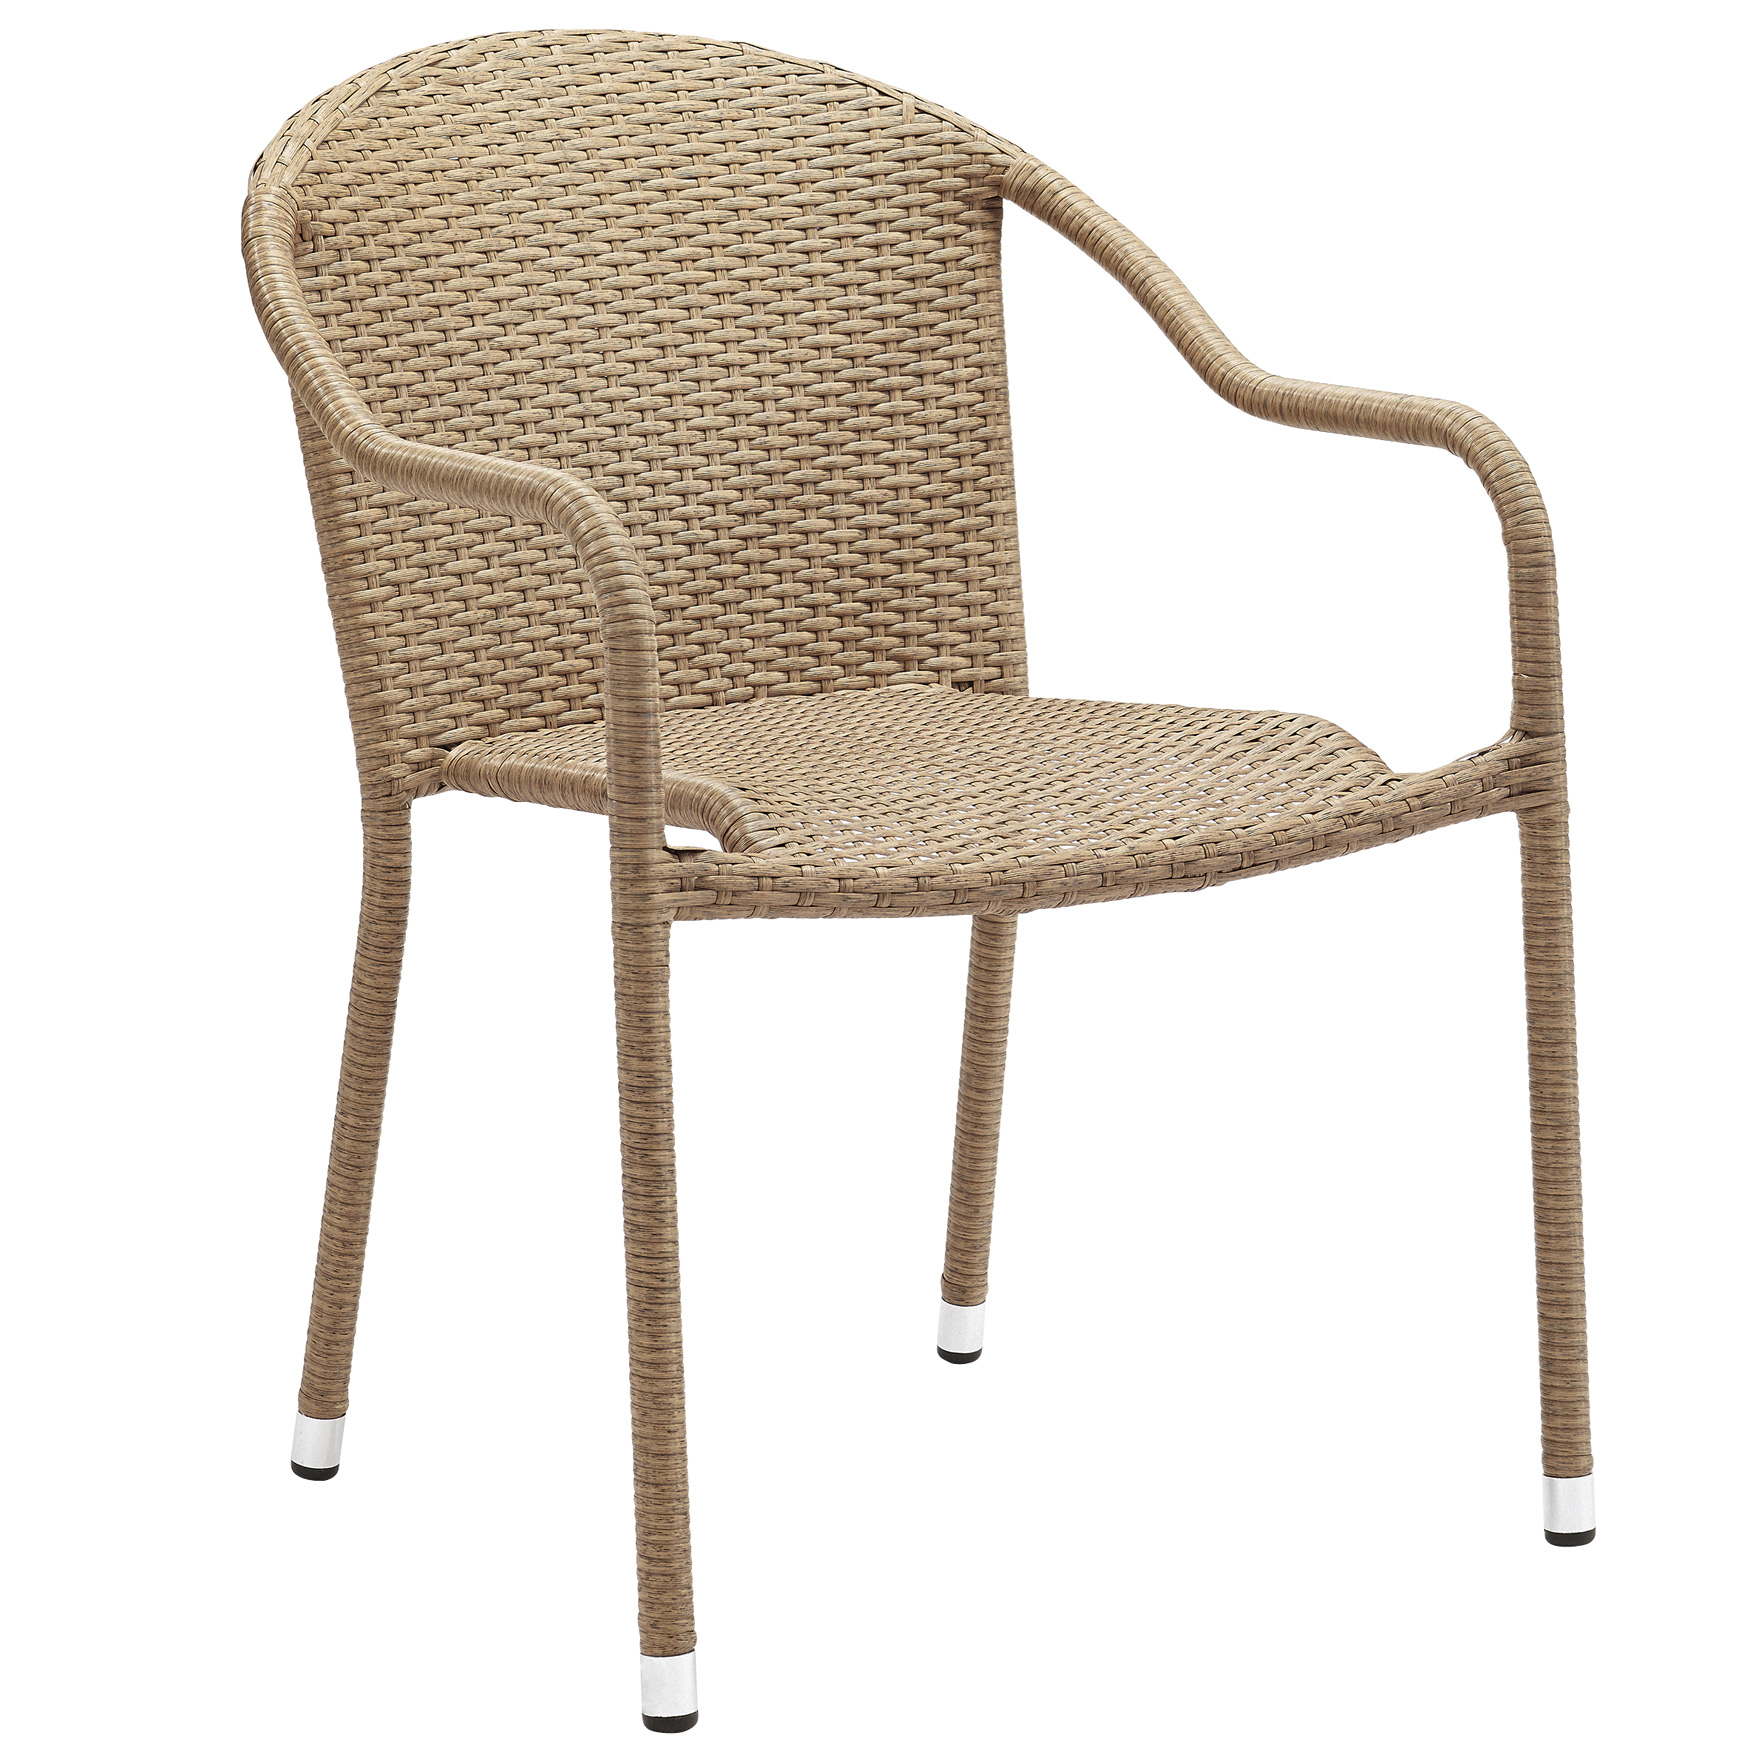 Palm Harbor Outdoor Wicker Stackable Chairs - Set of 4,